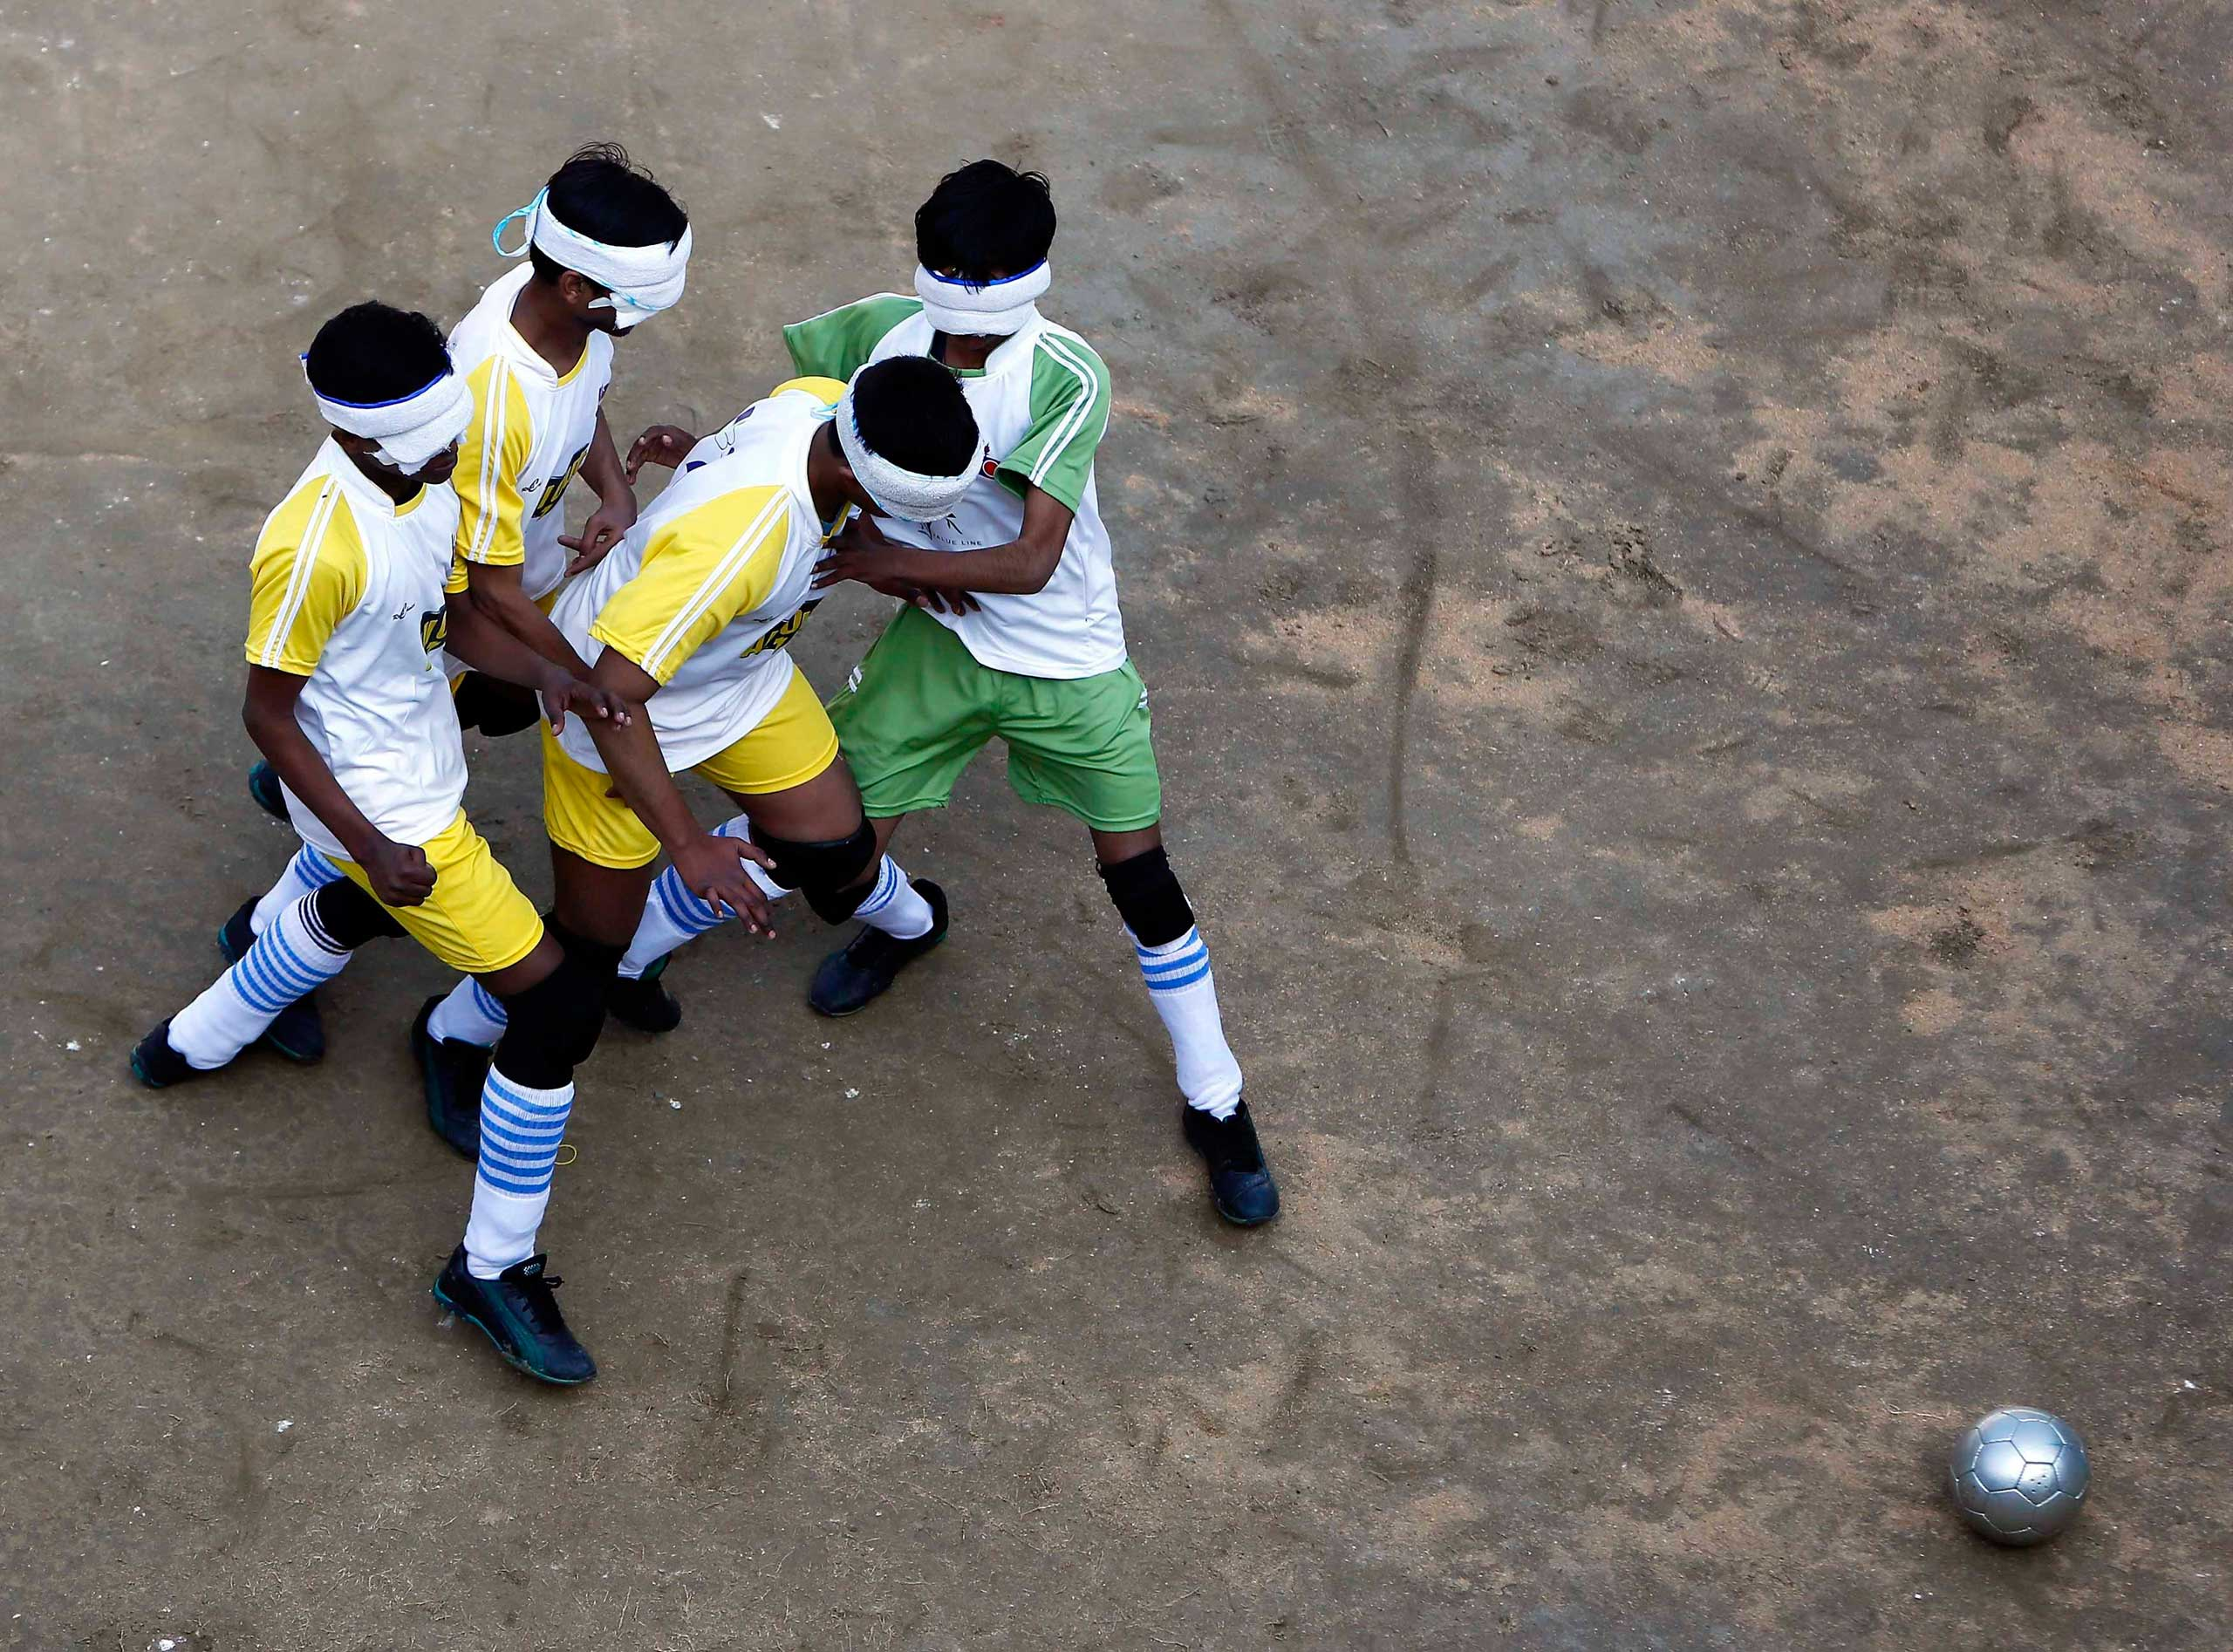 Visually impaired students of a school for the blind fight for the ball during a soccer match inside their school in New Delhi Jan. 5, 2015.